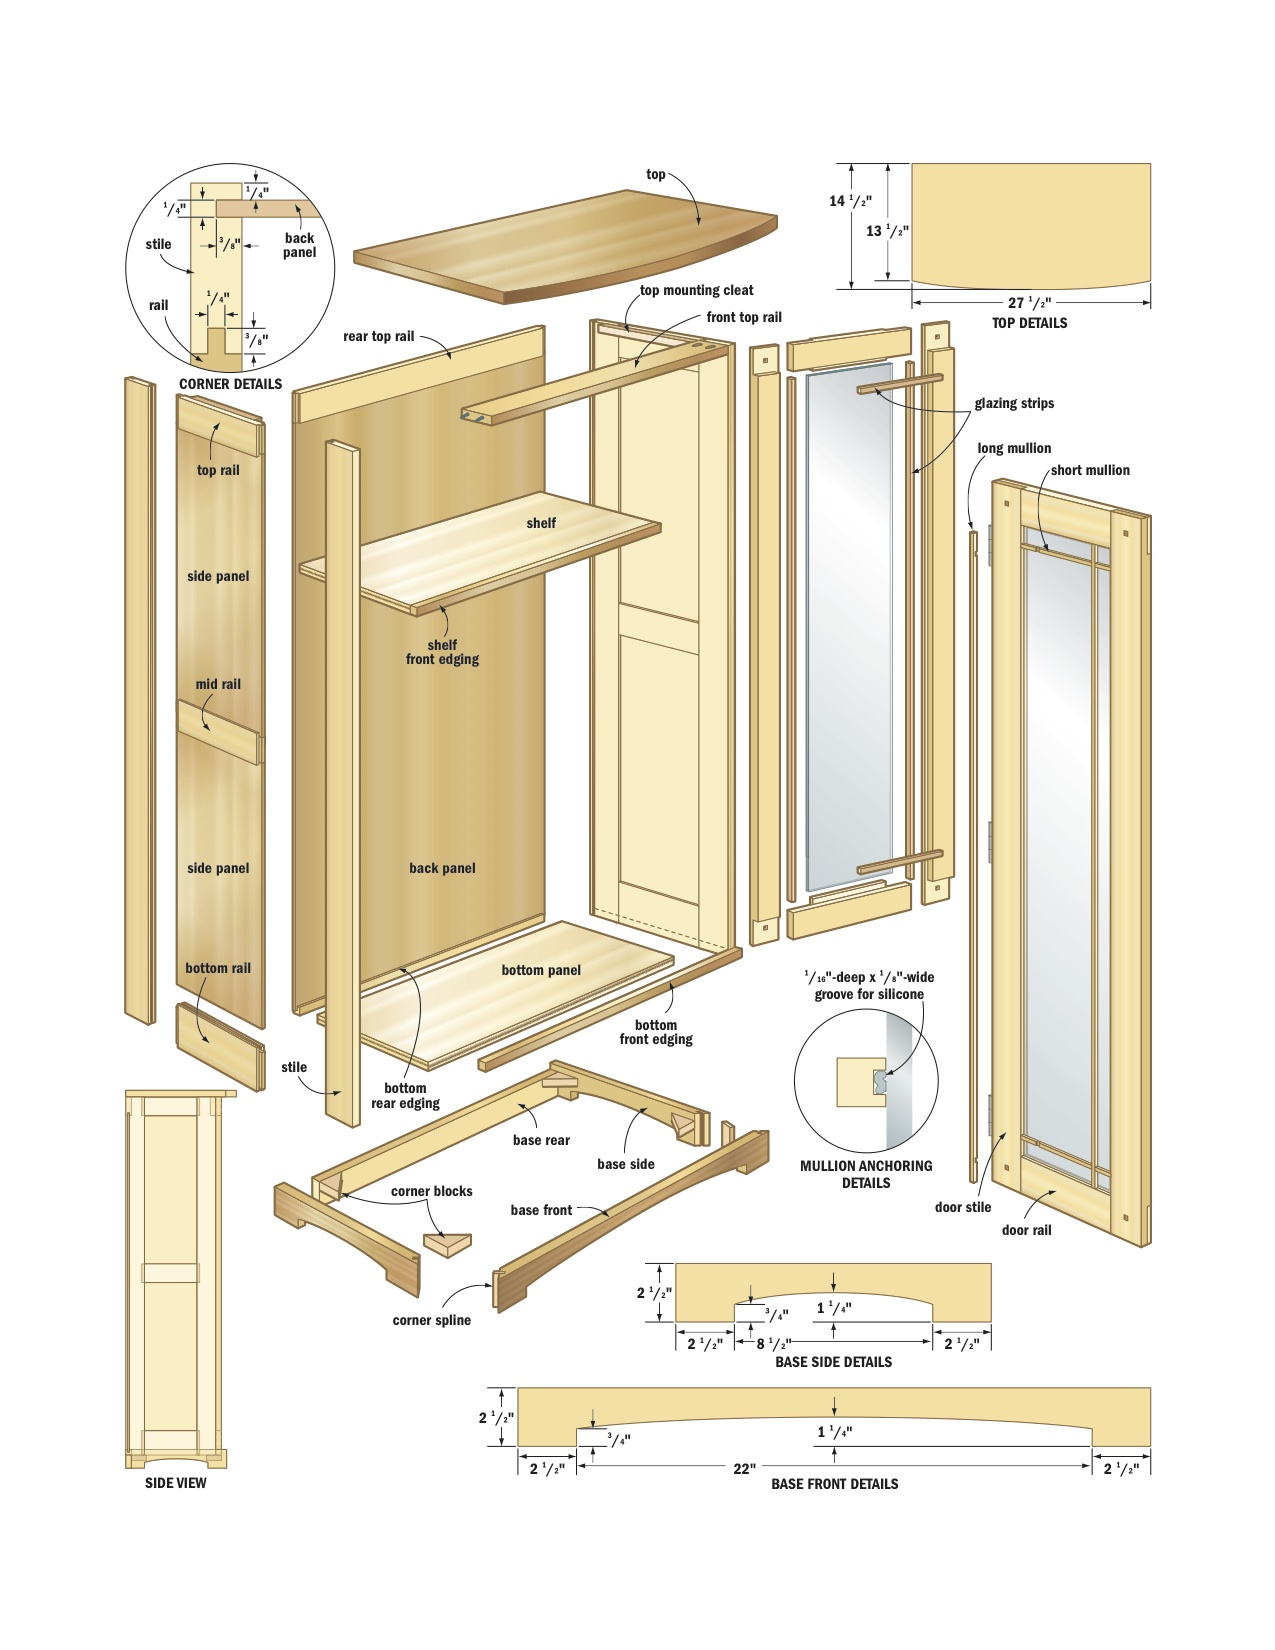 Woodwork kitchen cabinet plans woodworking pdf plans House projects plans